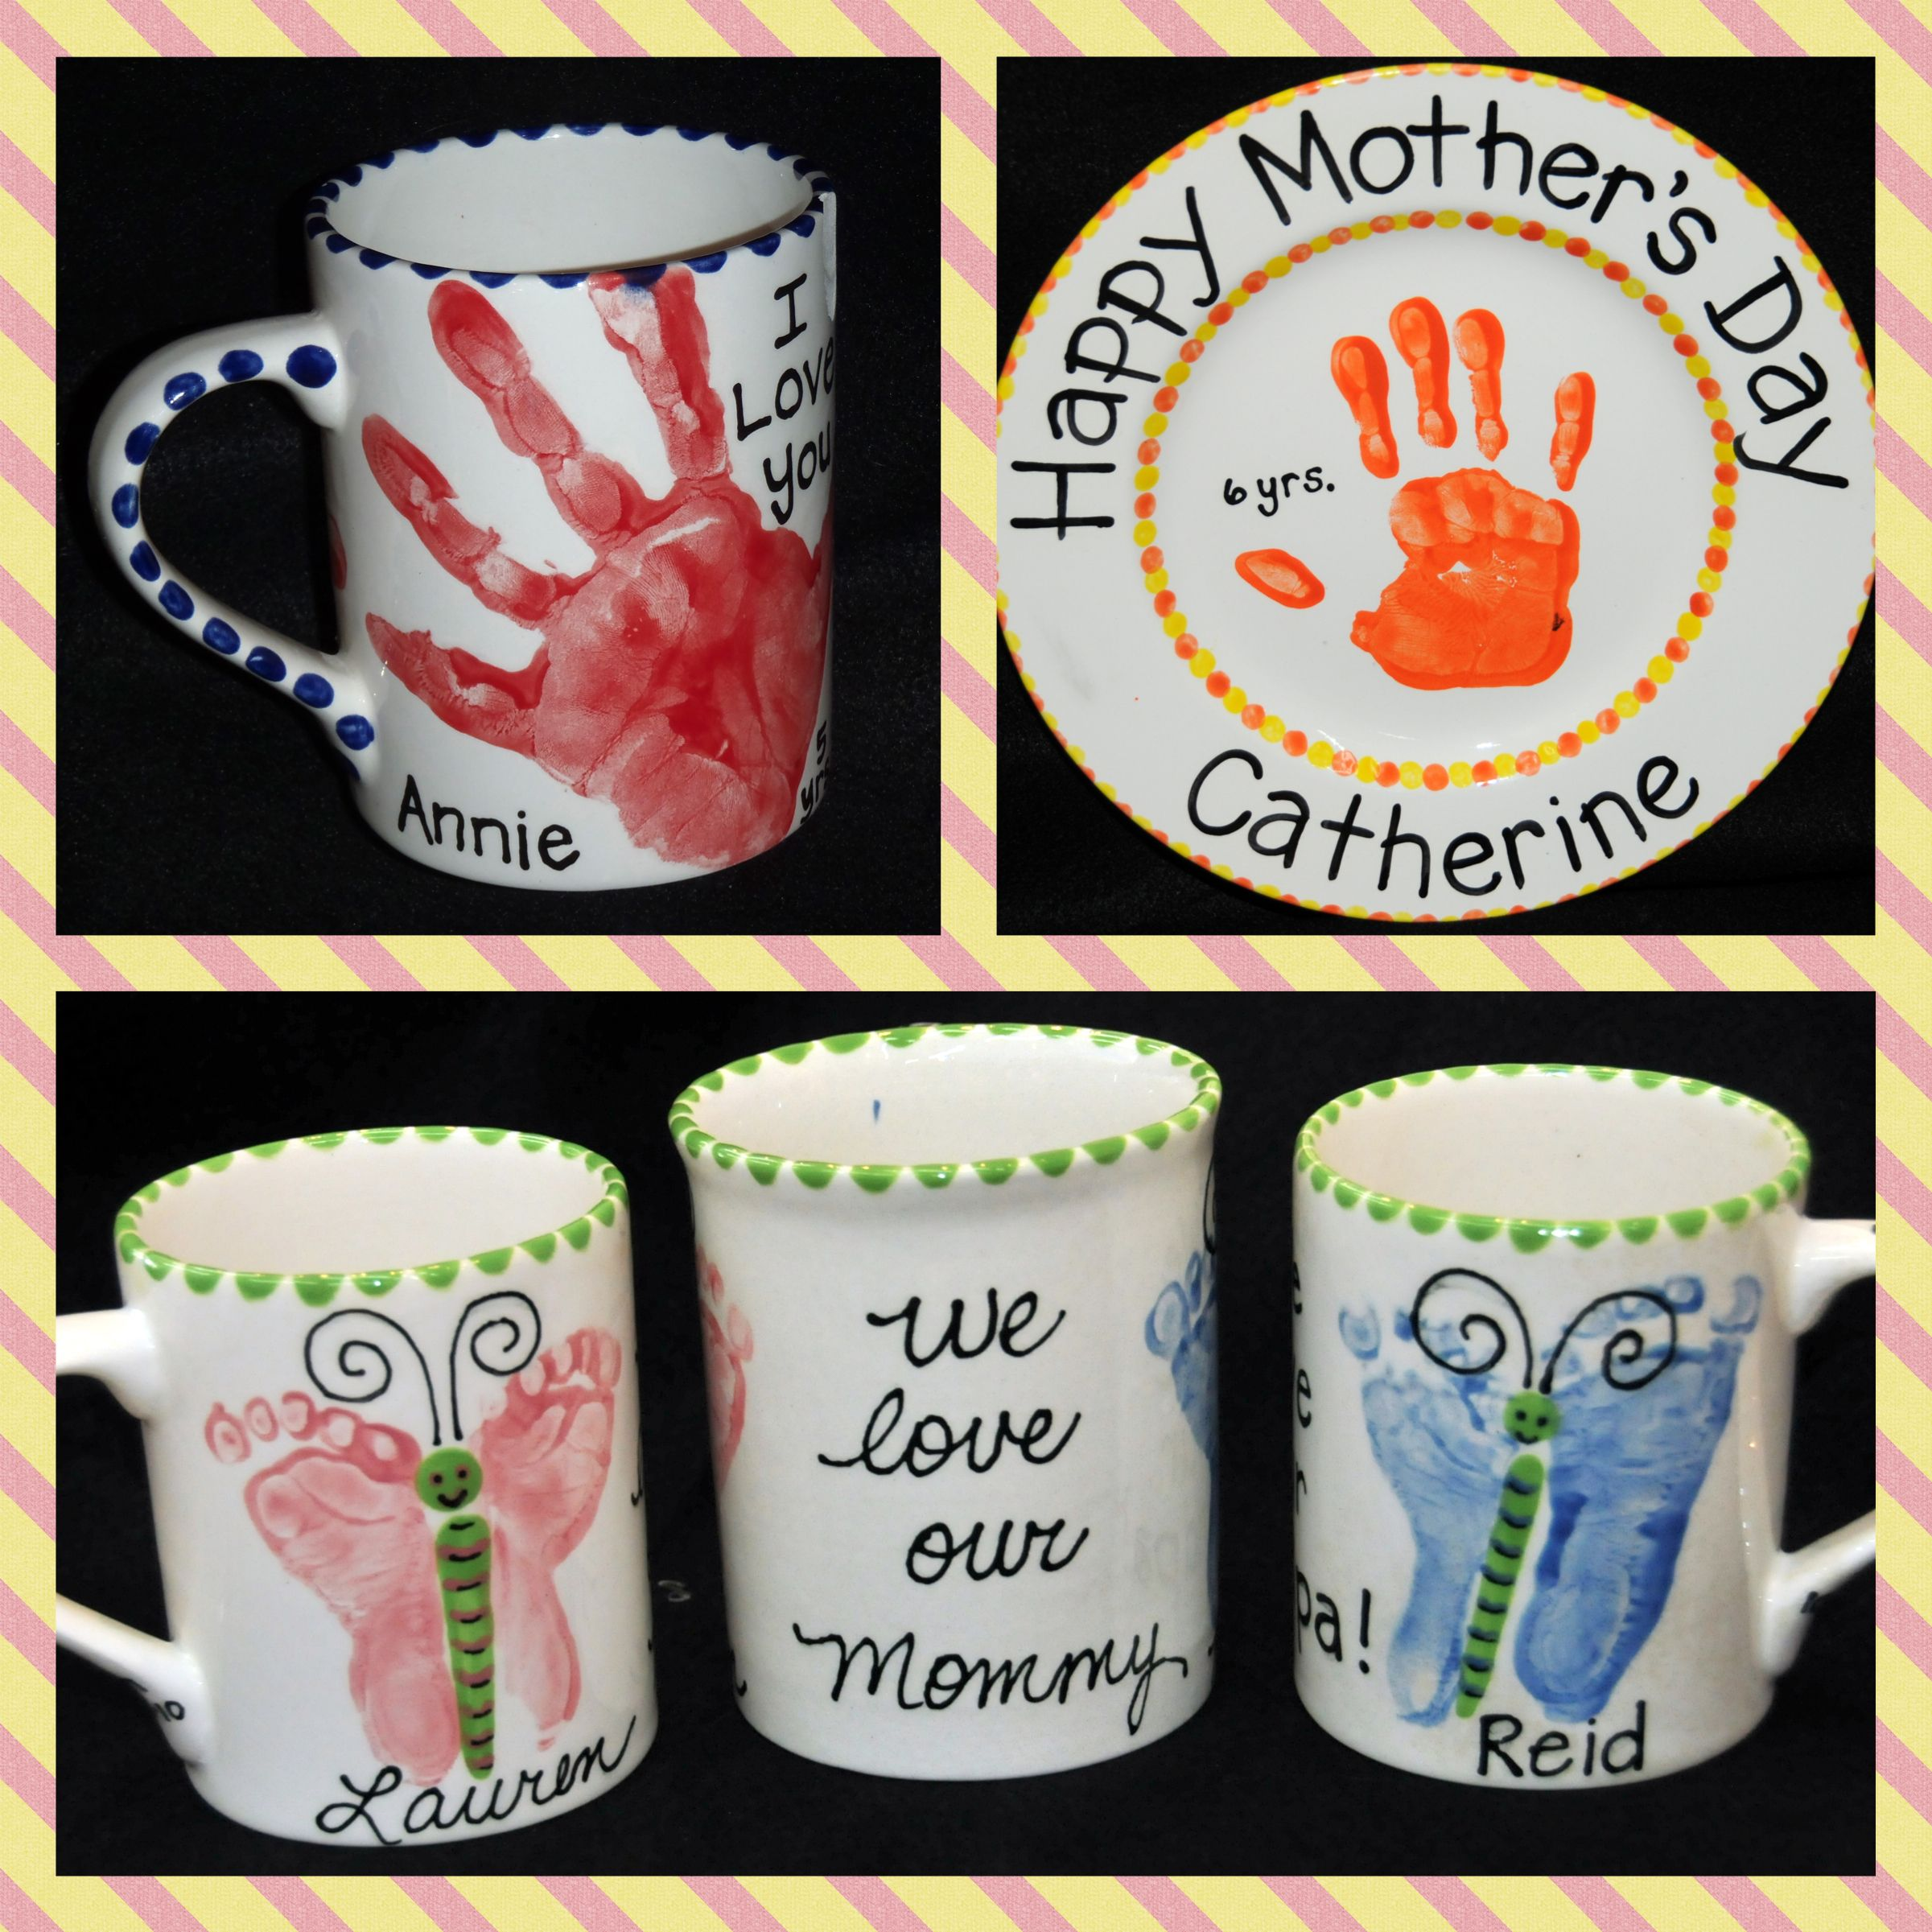 Home Mothers Day Crafts Diy Mothers Day Gifts Mother S Day